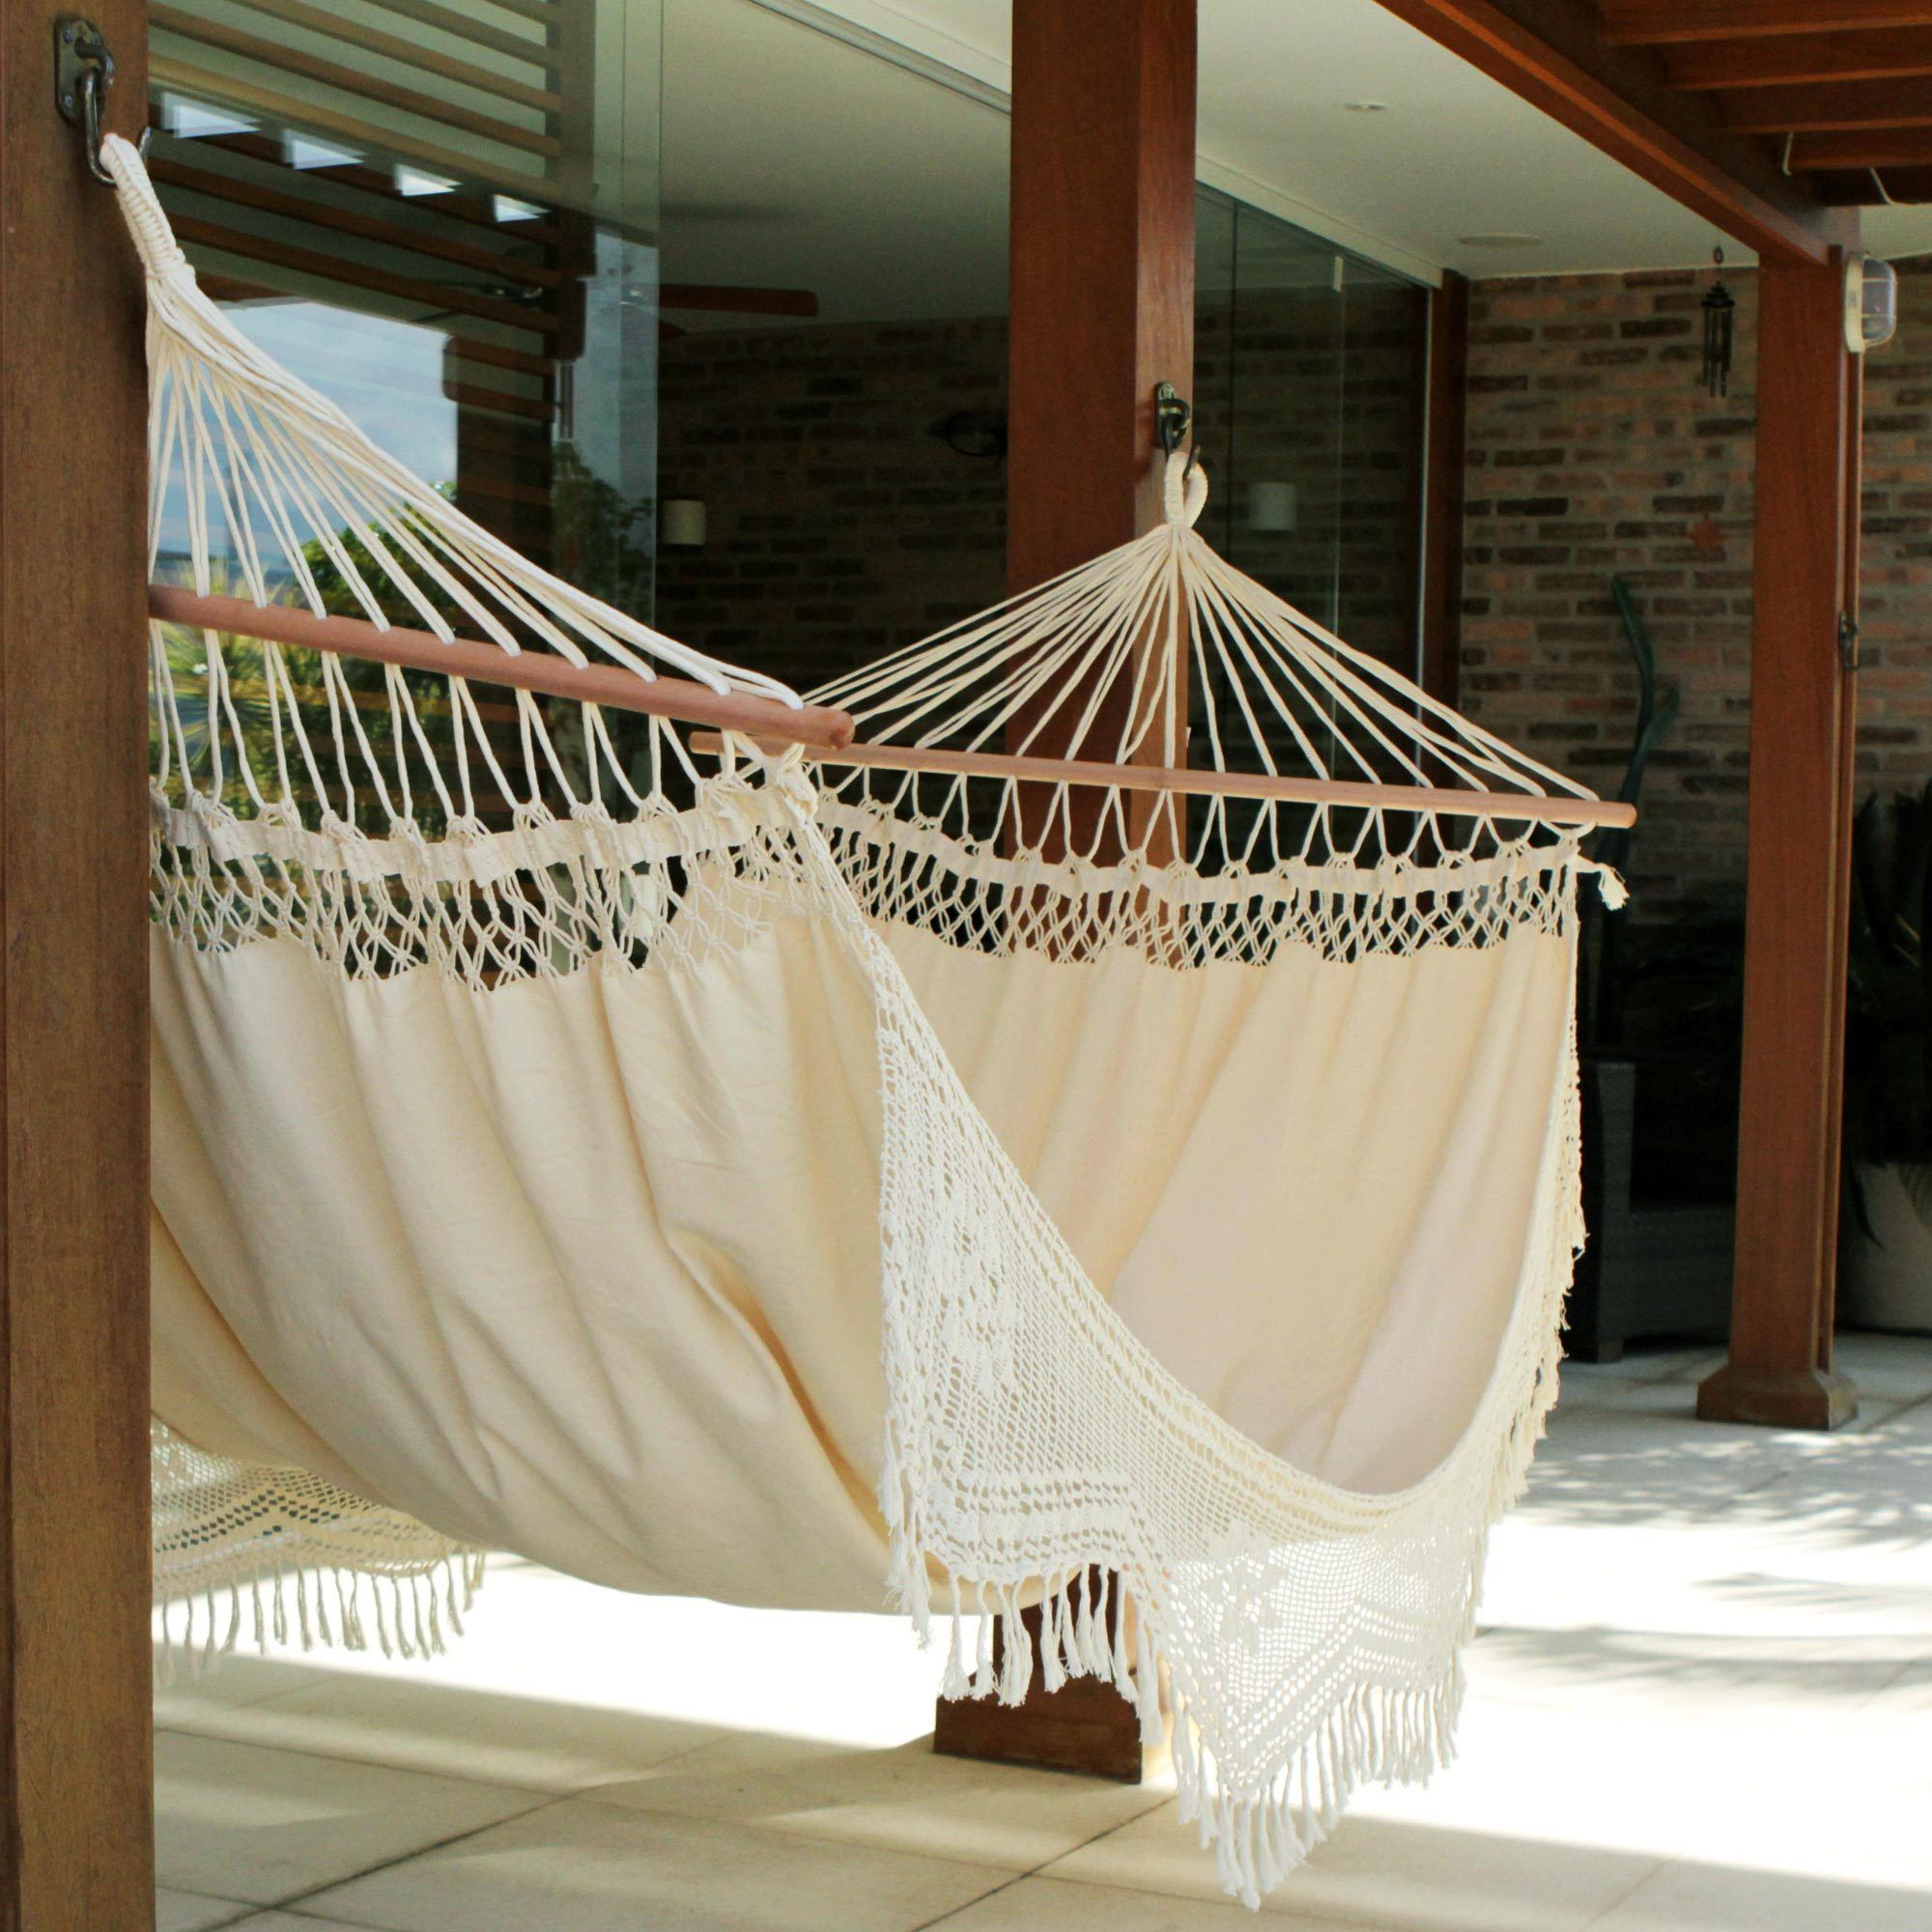 handcrafted cotton  u0027tropical nature u0027 single hammock  brazil  handcrafted cotton  u0027tropical nature u0027 single hammock  brazil      rh   pinterest